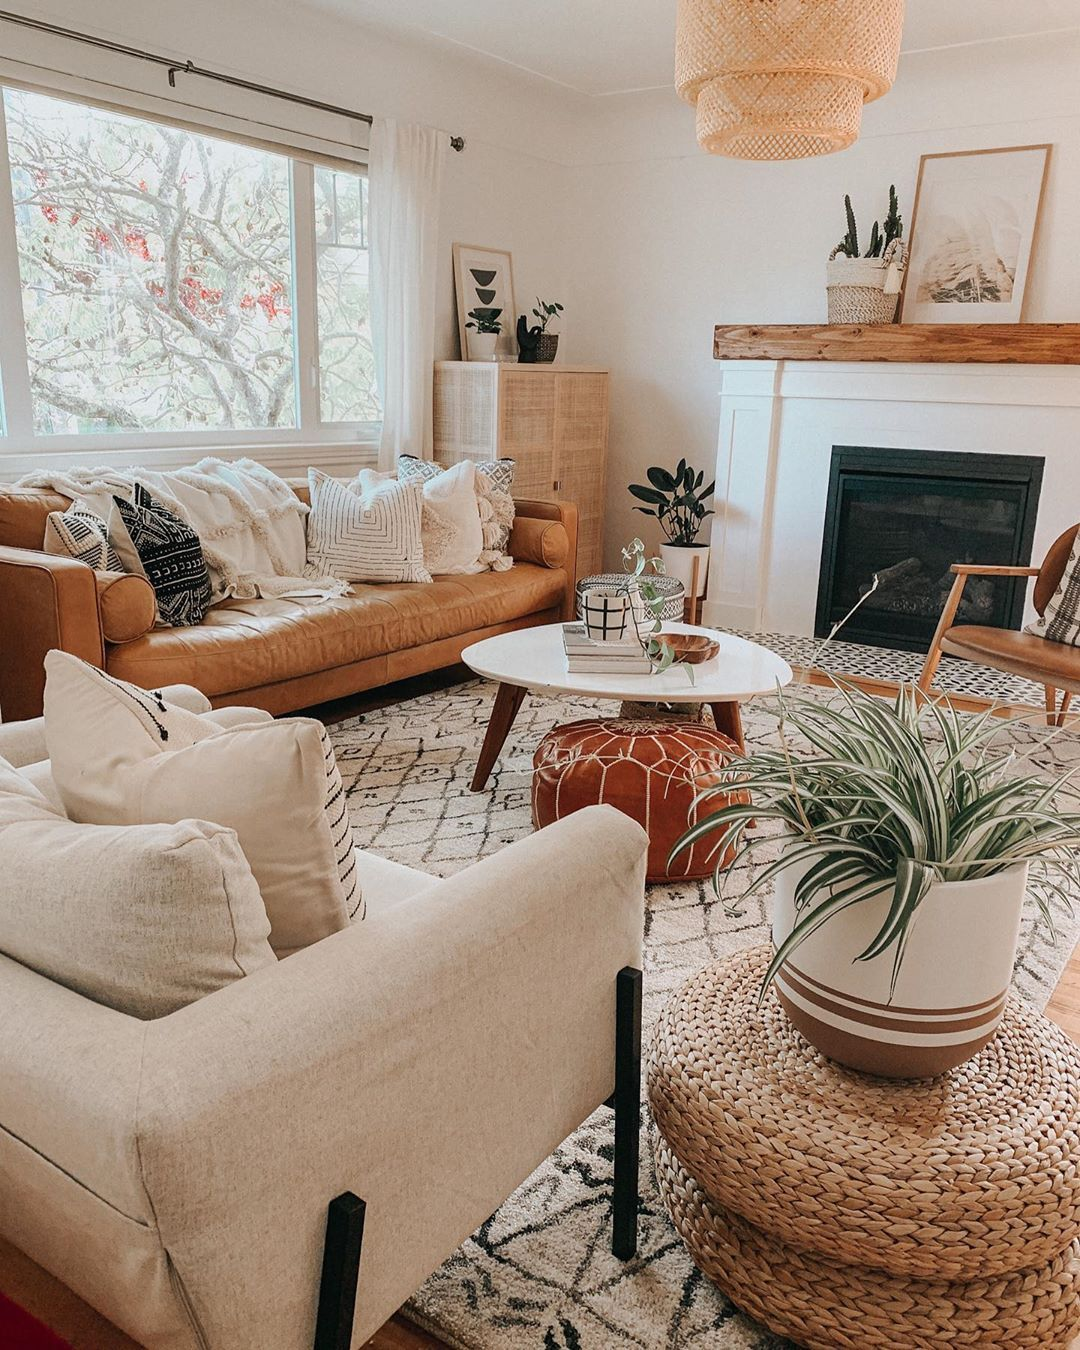 C L O E T H O M S O N On Instagram Ok But For Real Drop Your Trusted Fruit Fly Trap Recipes Guys In 2020 Living Room Inspo Boho Living Room Home Decor Inspiration